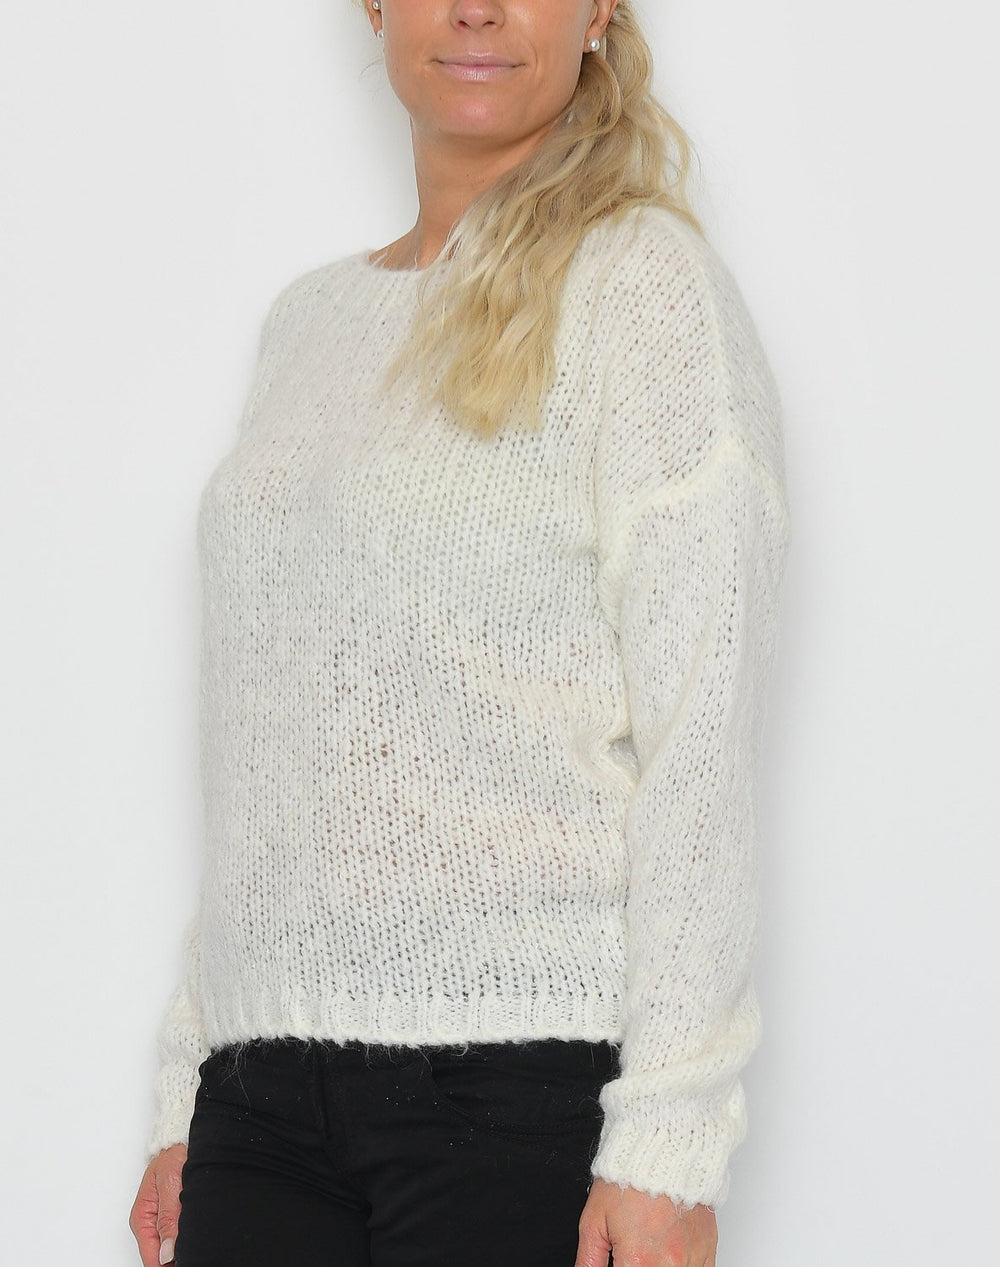 Noella Kala knit sweater white - Online-Mode